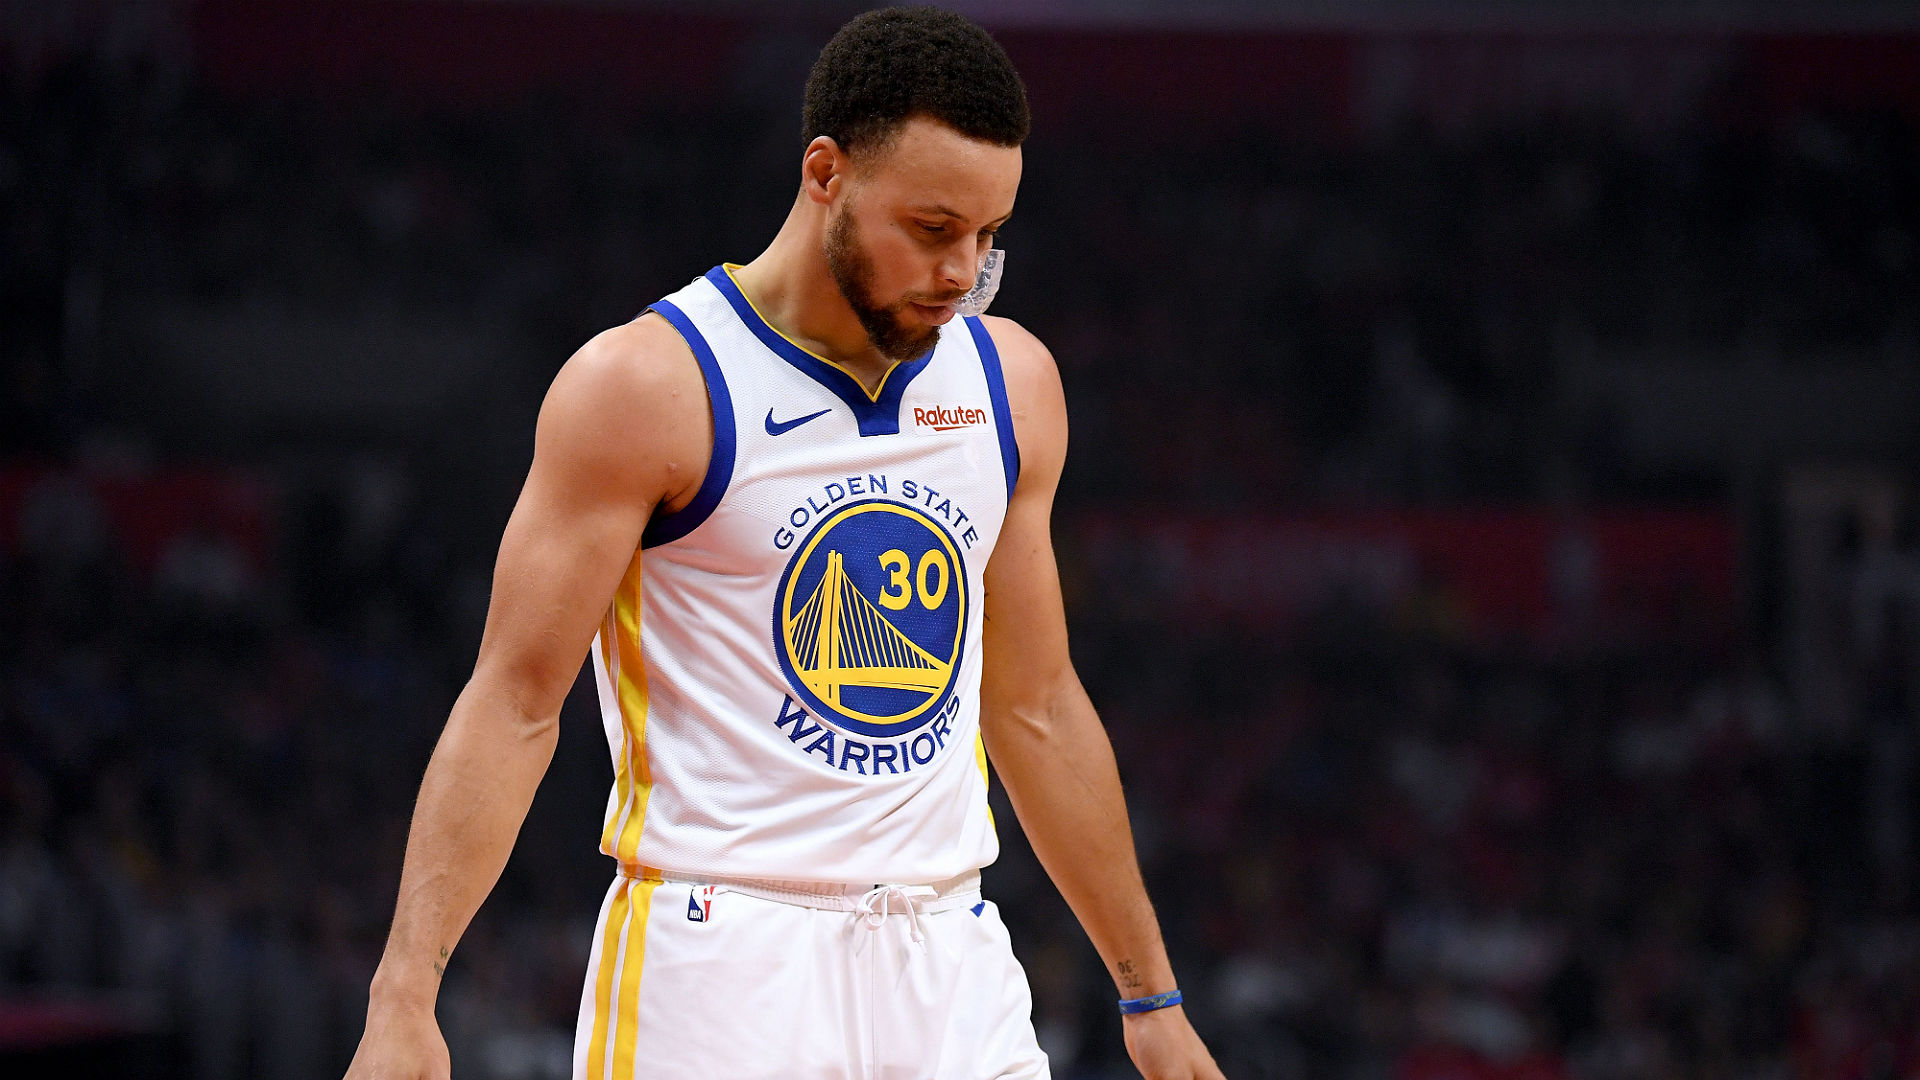 Kerr backs Warriors star Curry to bounce back quickly